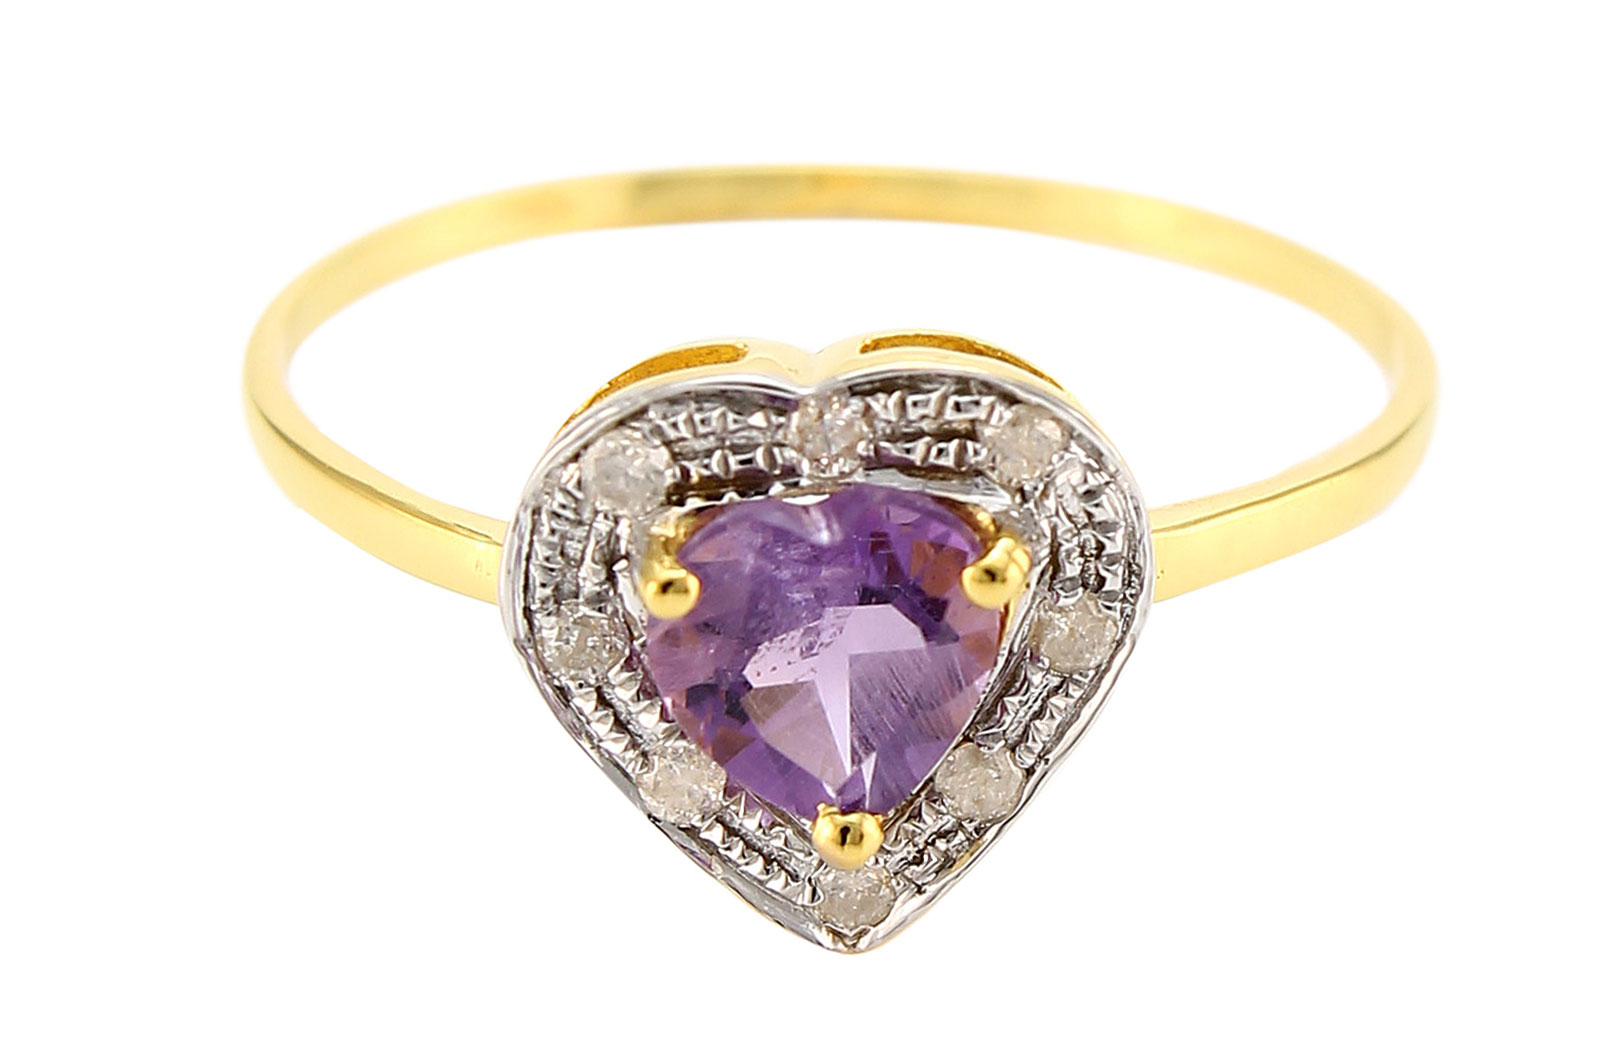 VP Jewels 18K Solid Yellow Gold 0.6CT Genuine Heart Cut Amethyst 0.08ct Genuine Diamonds Ring - 6.5 US